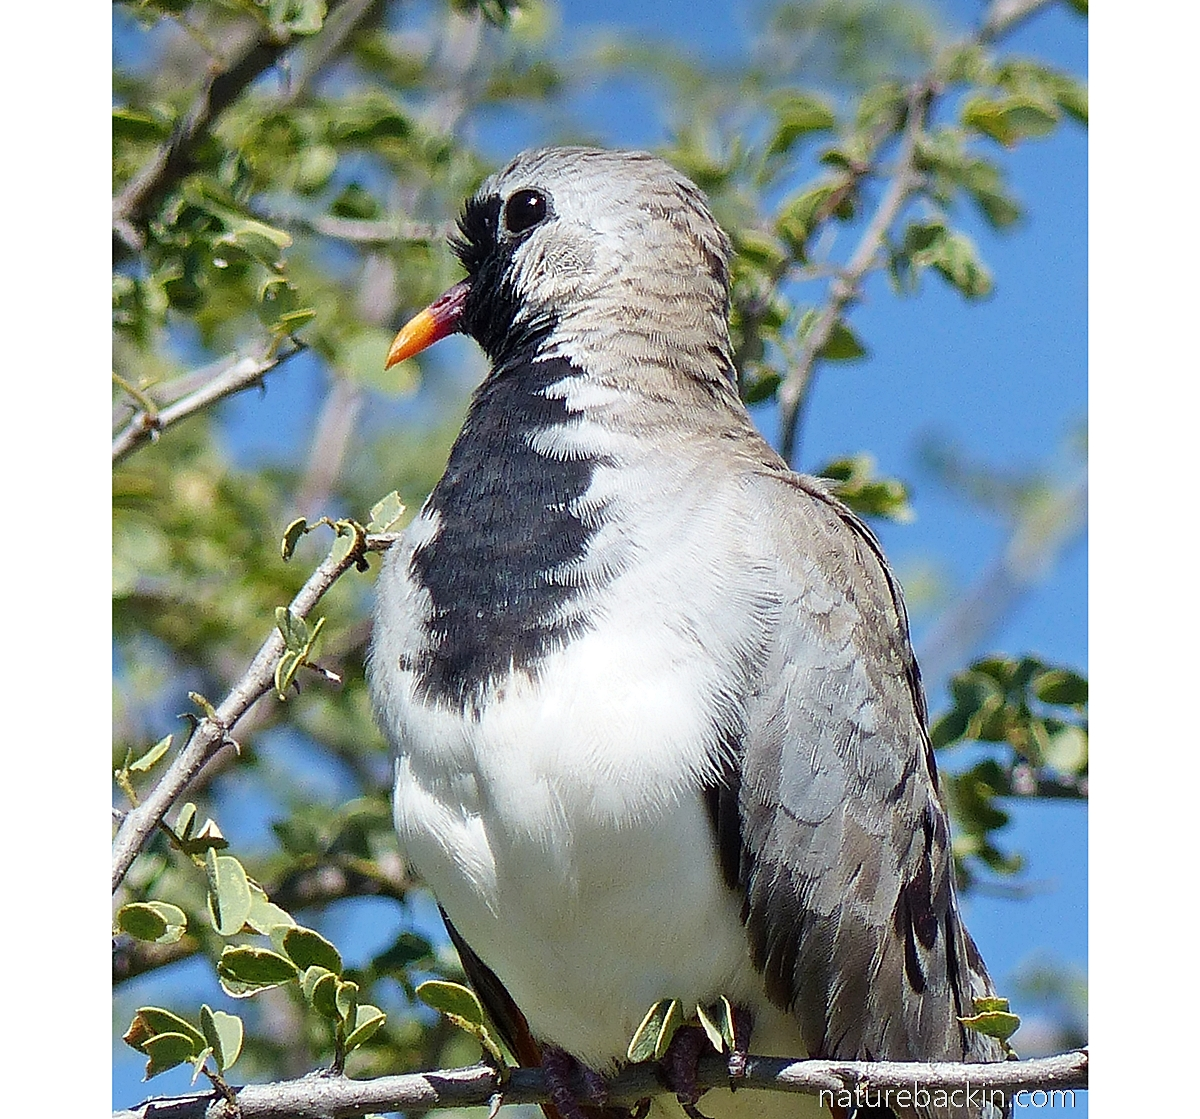 Male Namaqua dove portrait